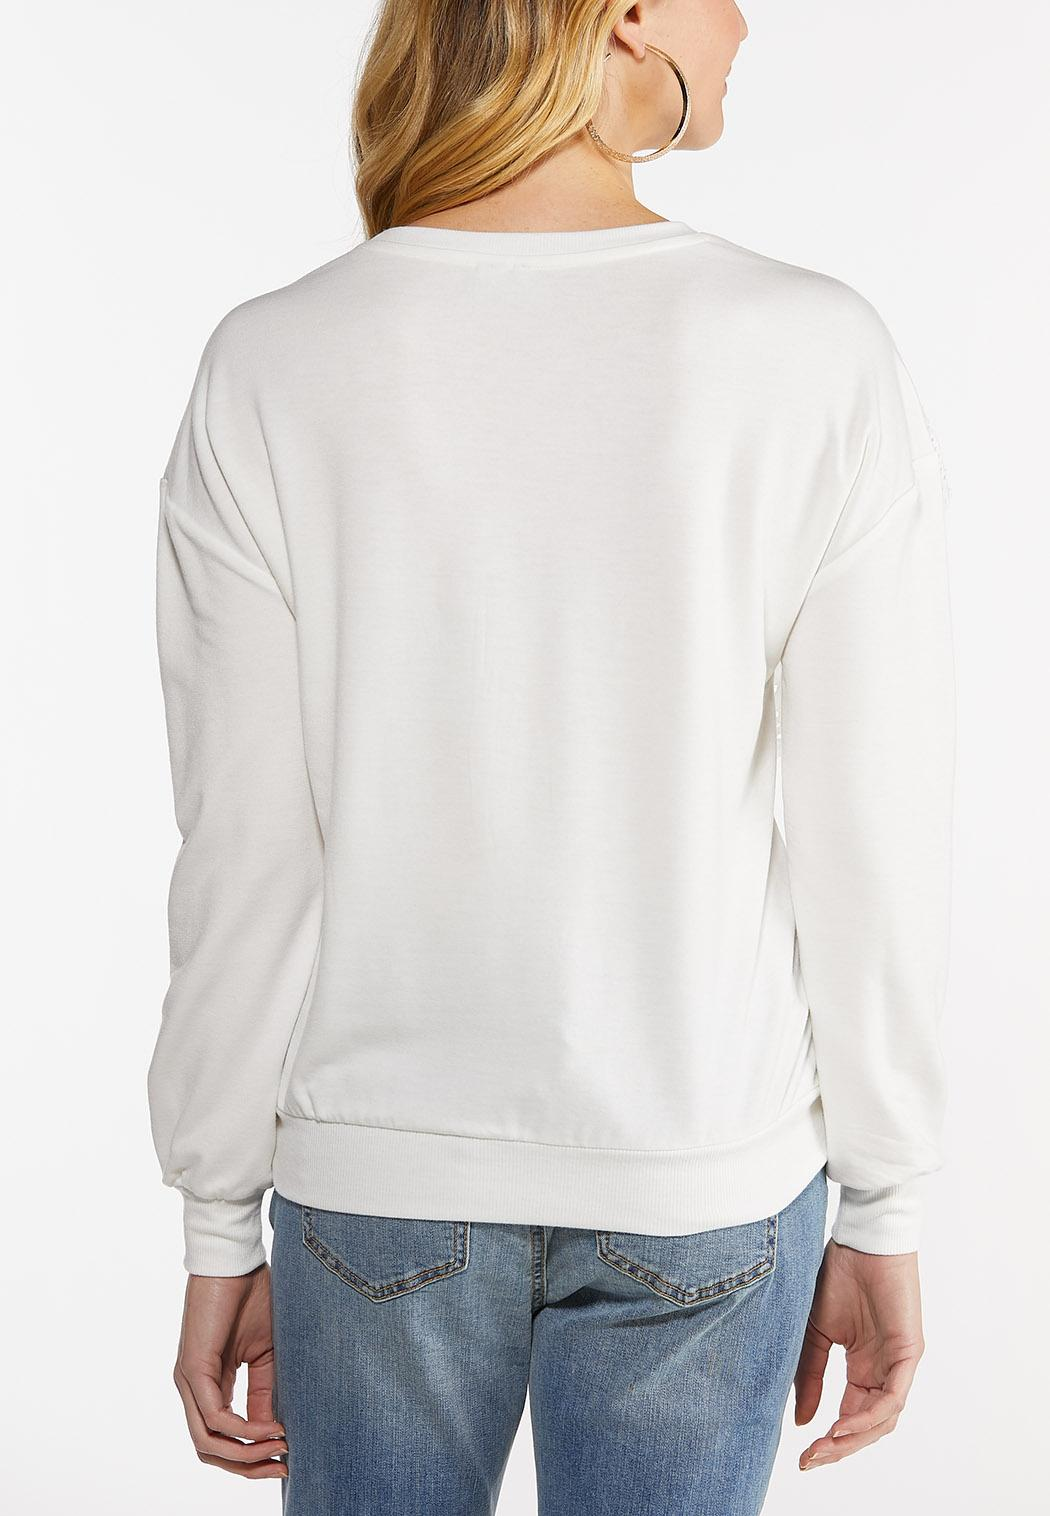 Eyelet Lace Trim Sweatshirt (Item #44481606)